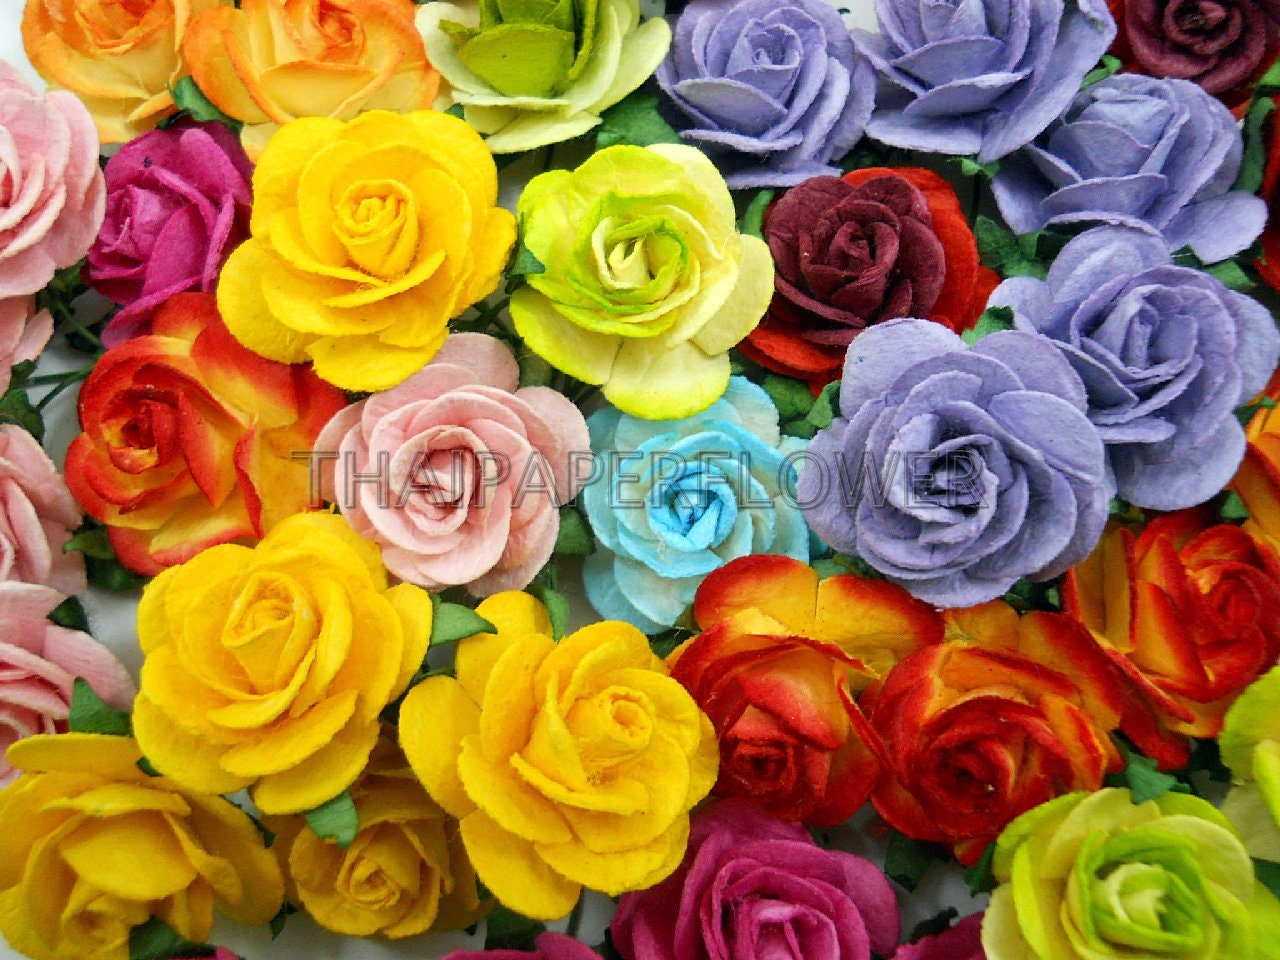 How to scrapbook at home - 100 Rainbow Mulberry Paper Flower Scrapbook Card Making Home Decor Craft Supply Roses 6 427